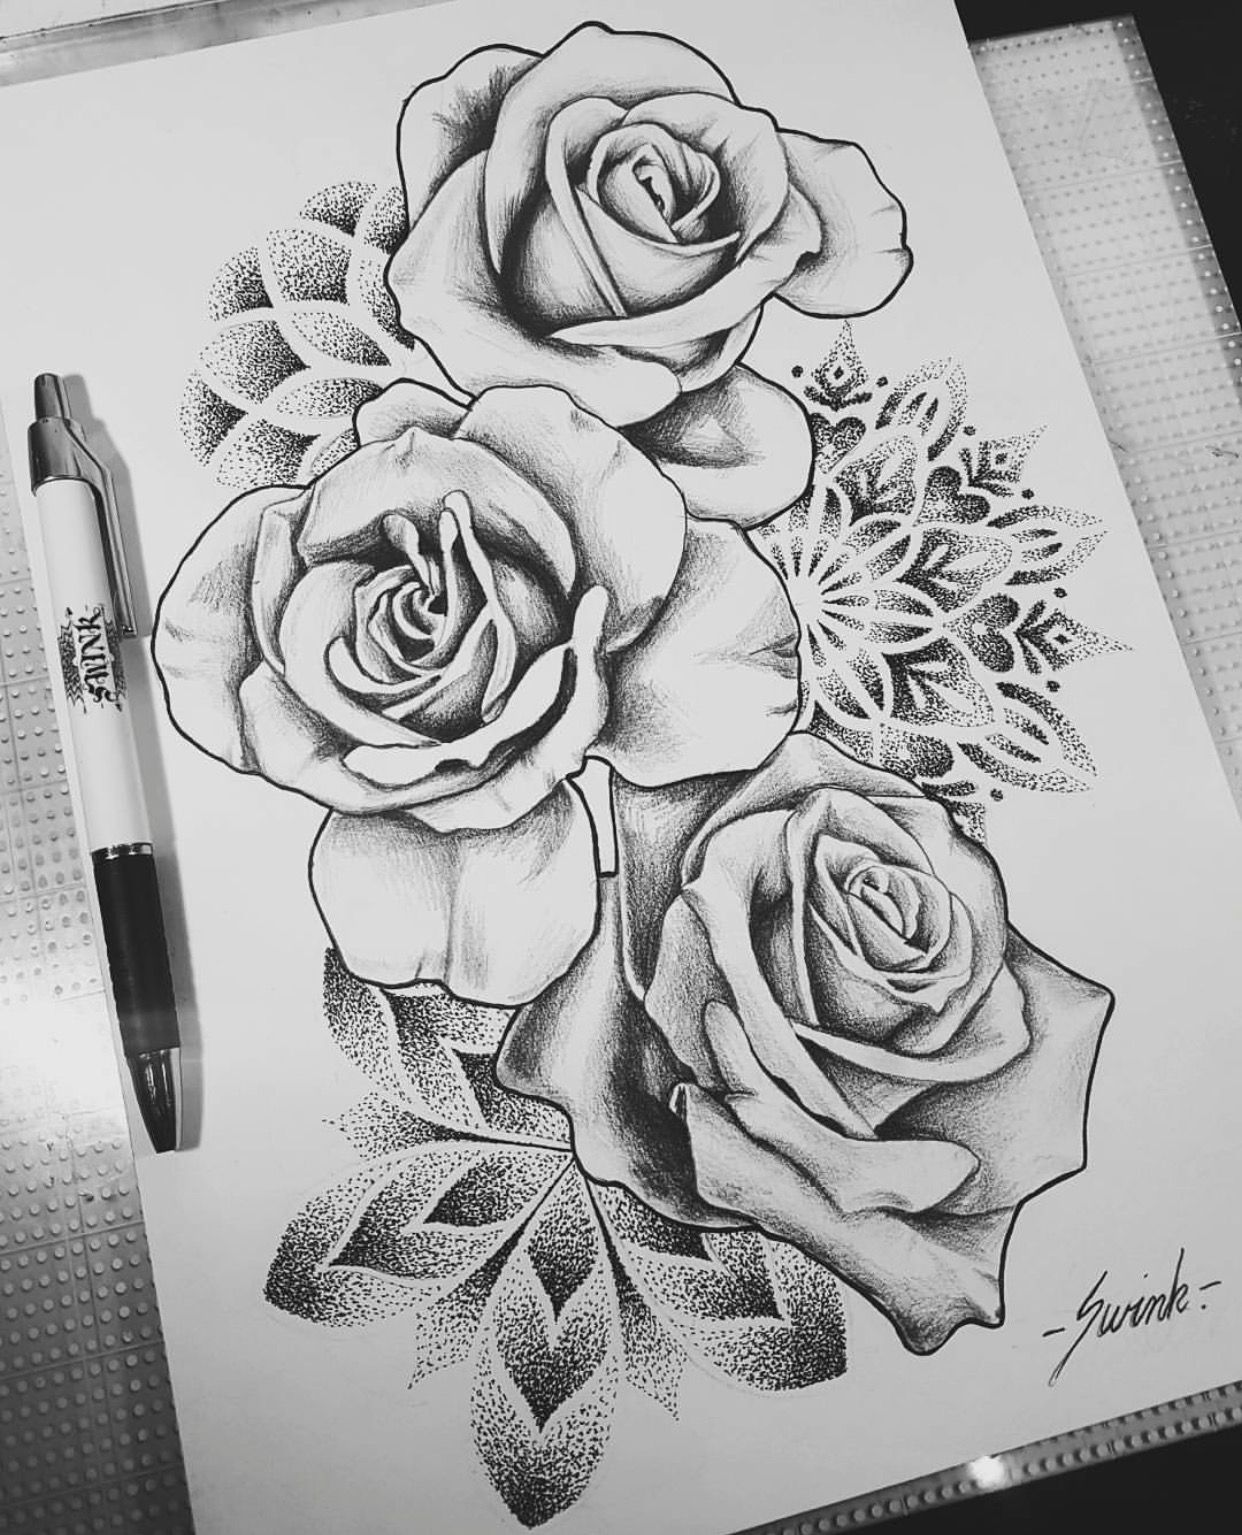 Geometrical Mandala Dot Work Roses Tattoo Design Drawing Found On Instagram Rose Tattoo Sleeve Tattoo Design Drawings Rose Tattoo Design